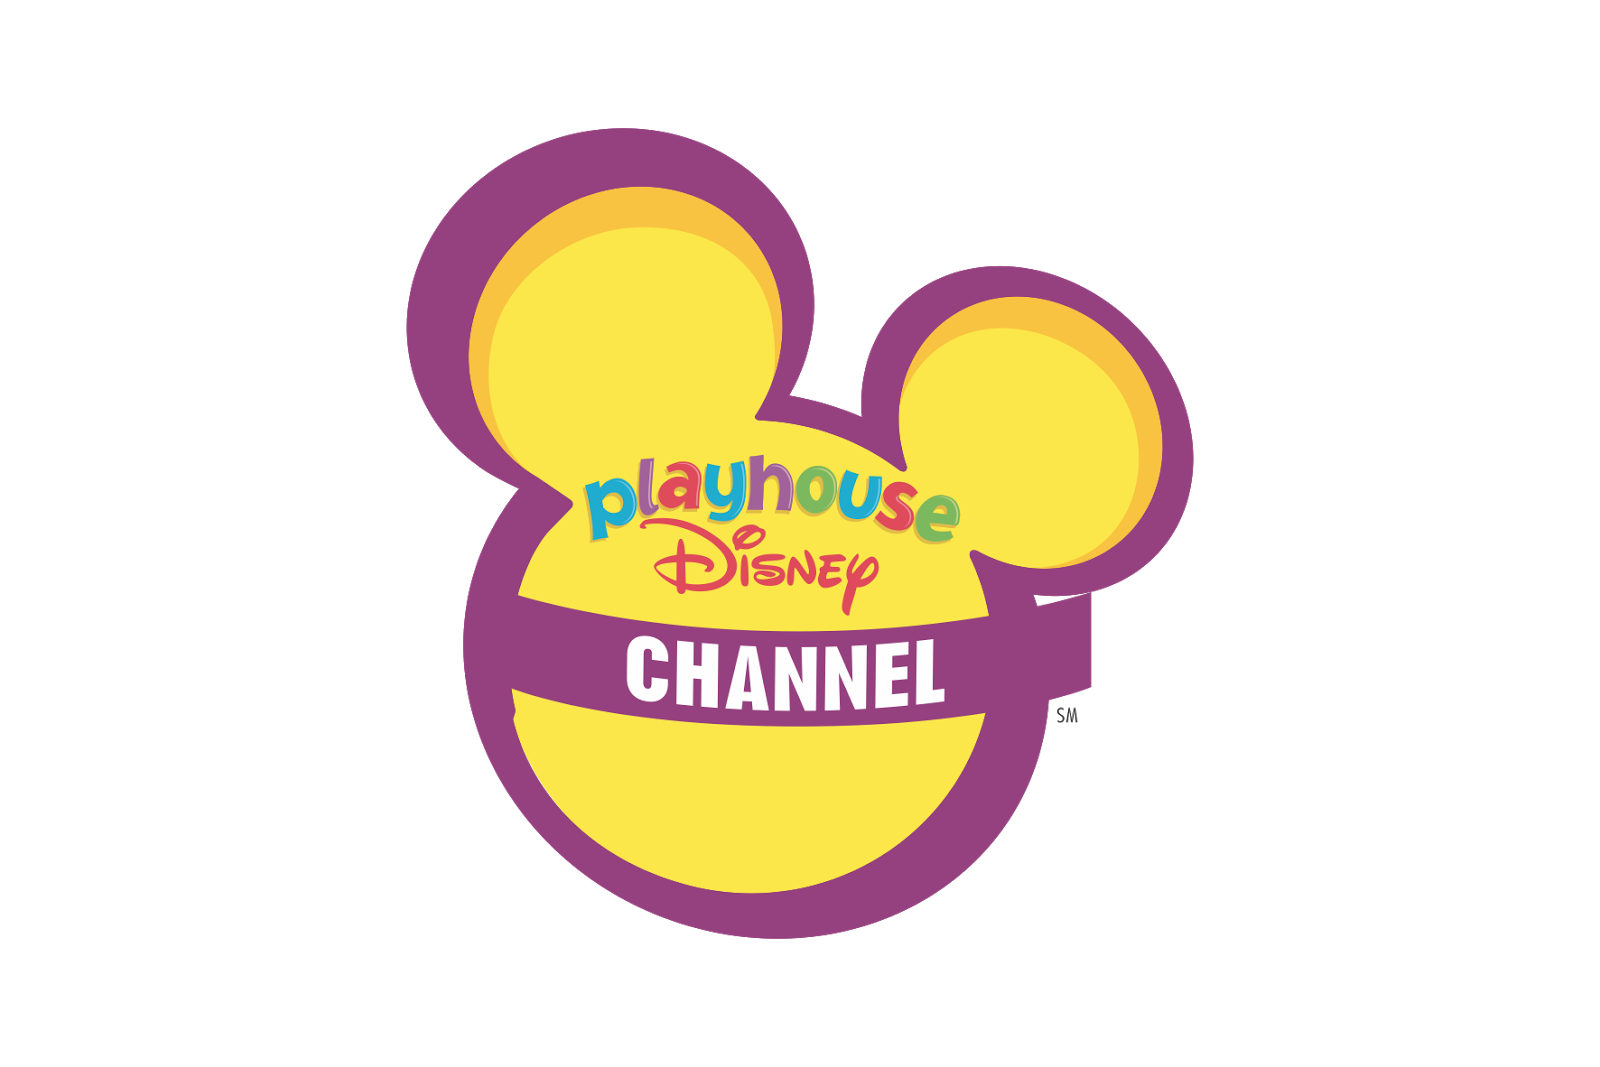 Playhouse disney Logos.